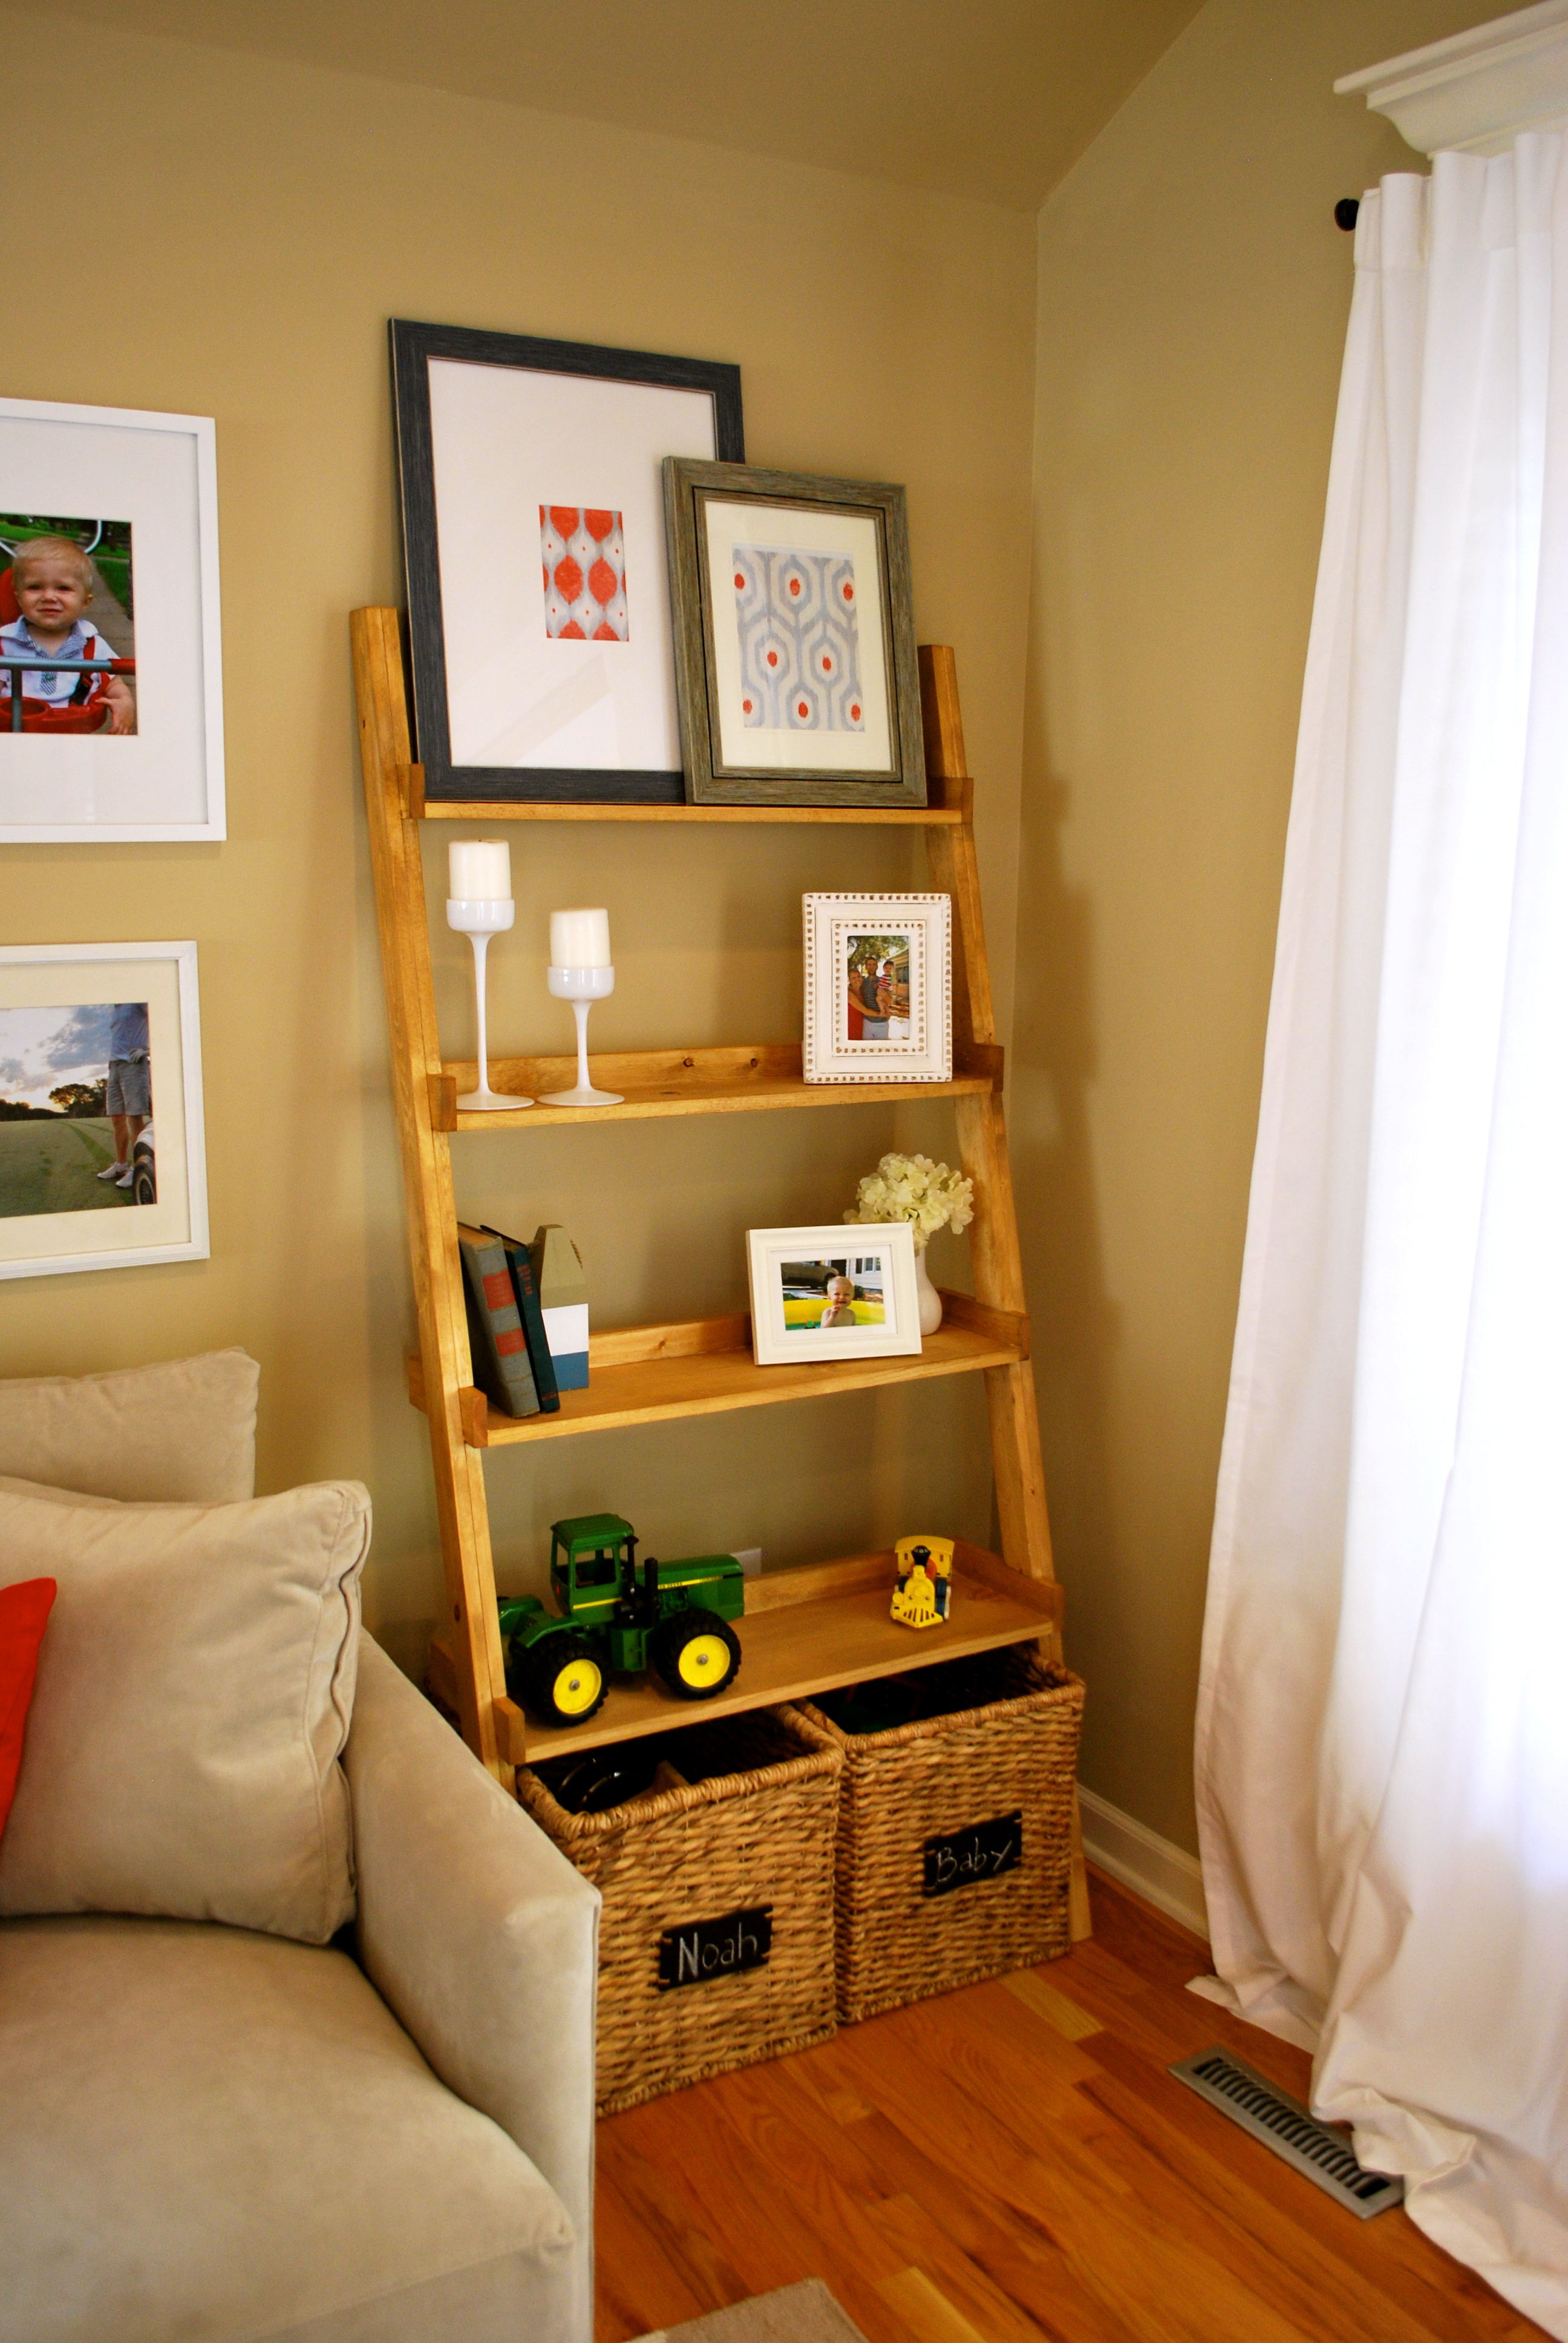 Diy ladder bookshelf an easy weekend project the suburban urbanist - Diy living room shelf ideas ...